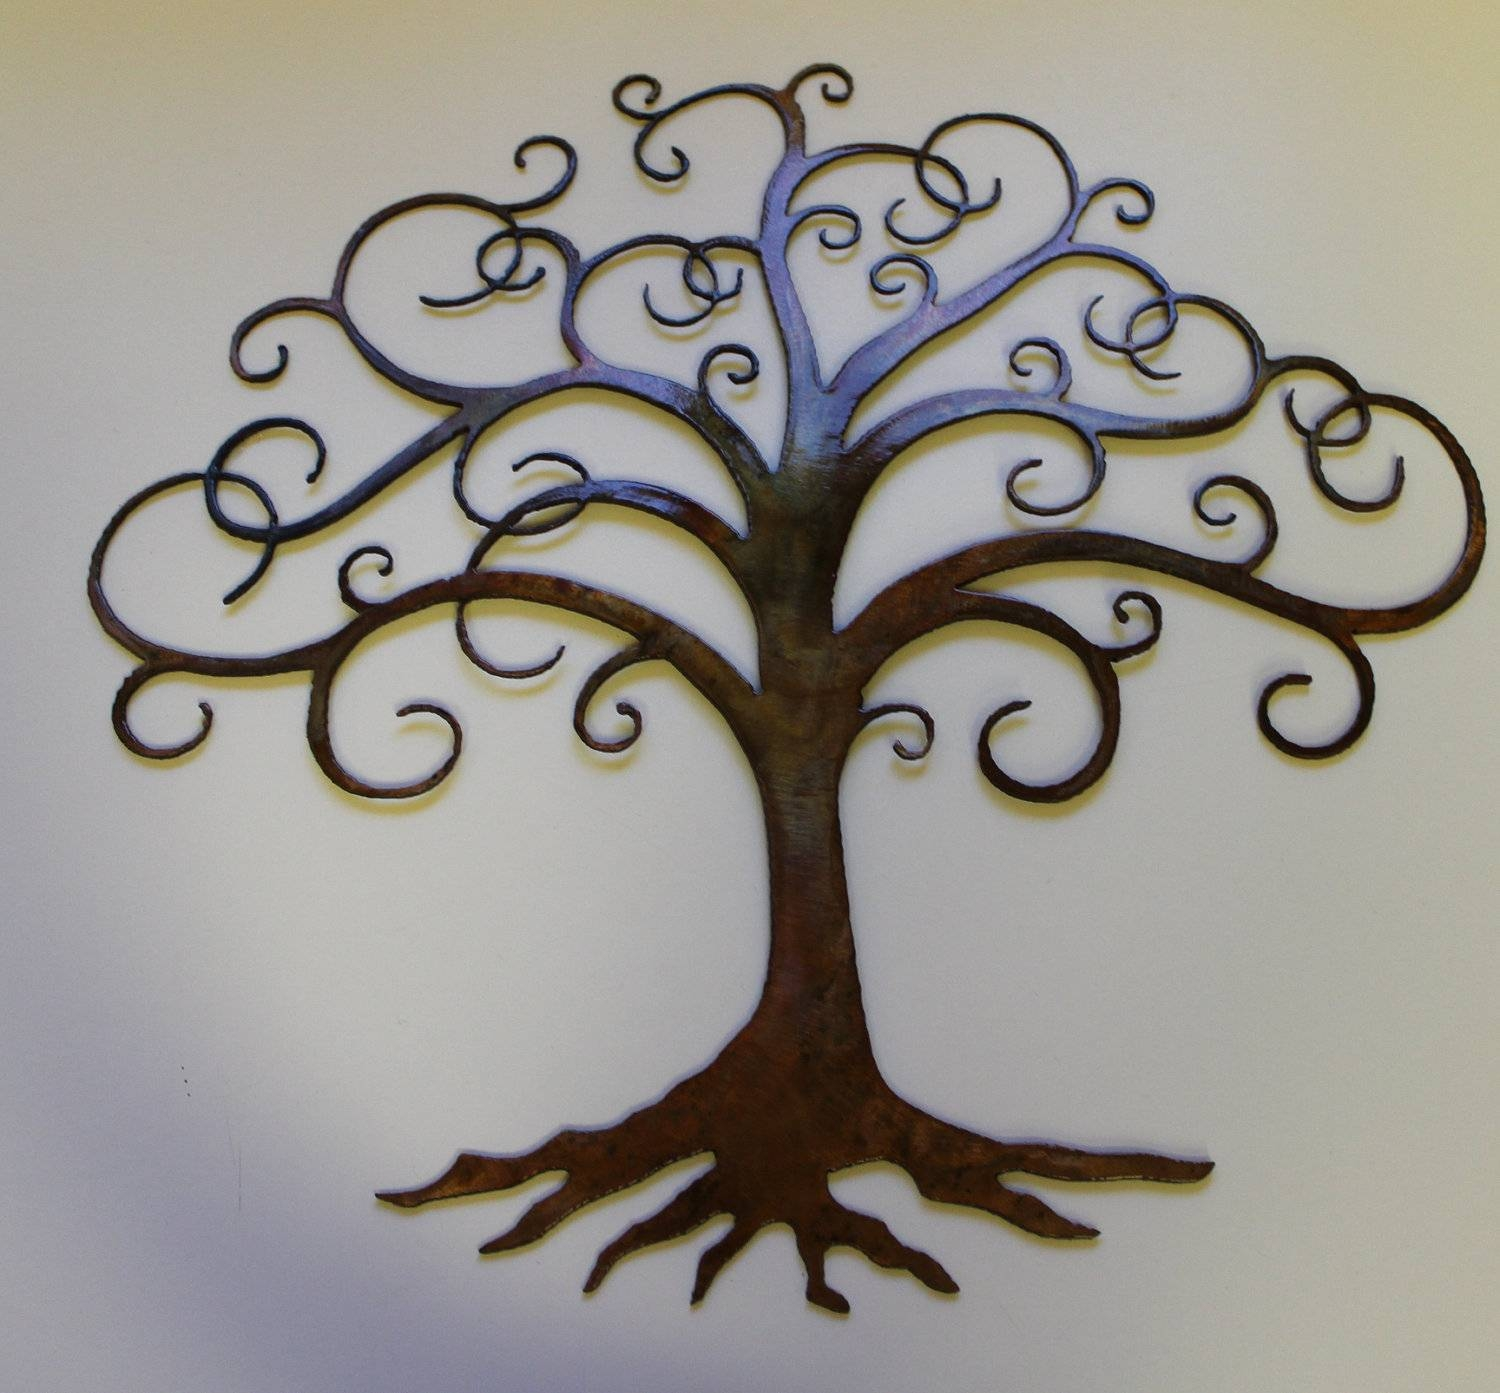 Wall Art Designs: Metal Wall Art Trees Breathtaking Large Metal Pertaining To Current Large Metal Wall Art Decor (View 18 of 20)